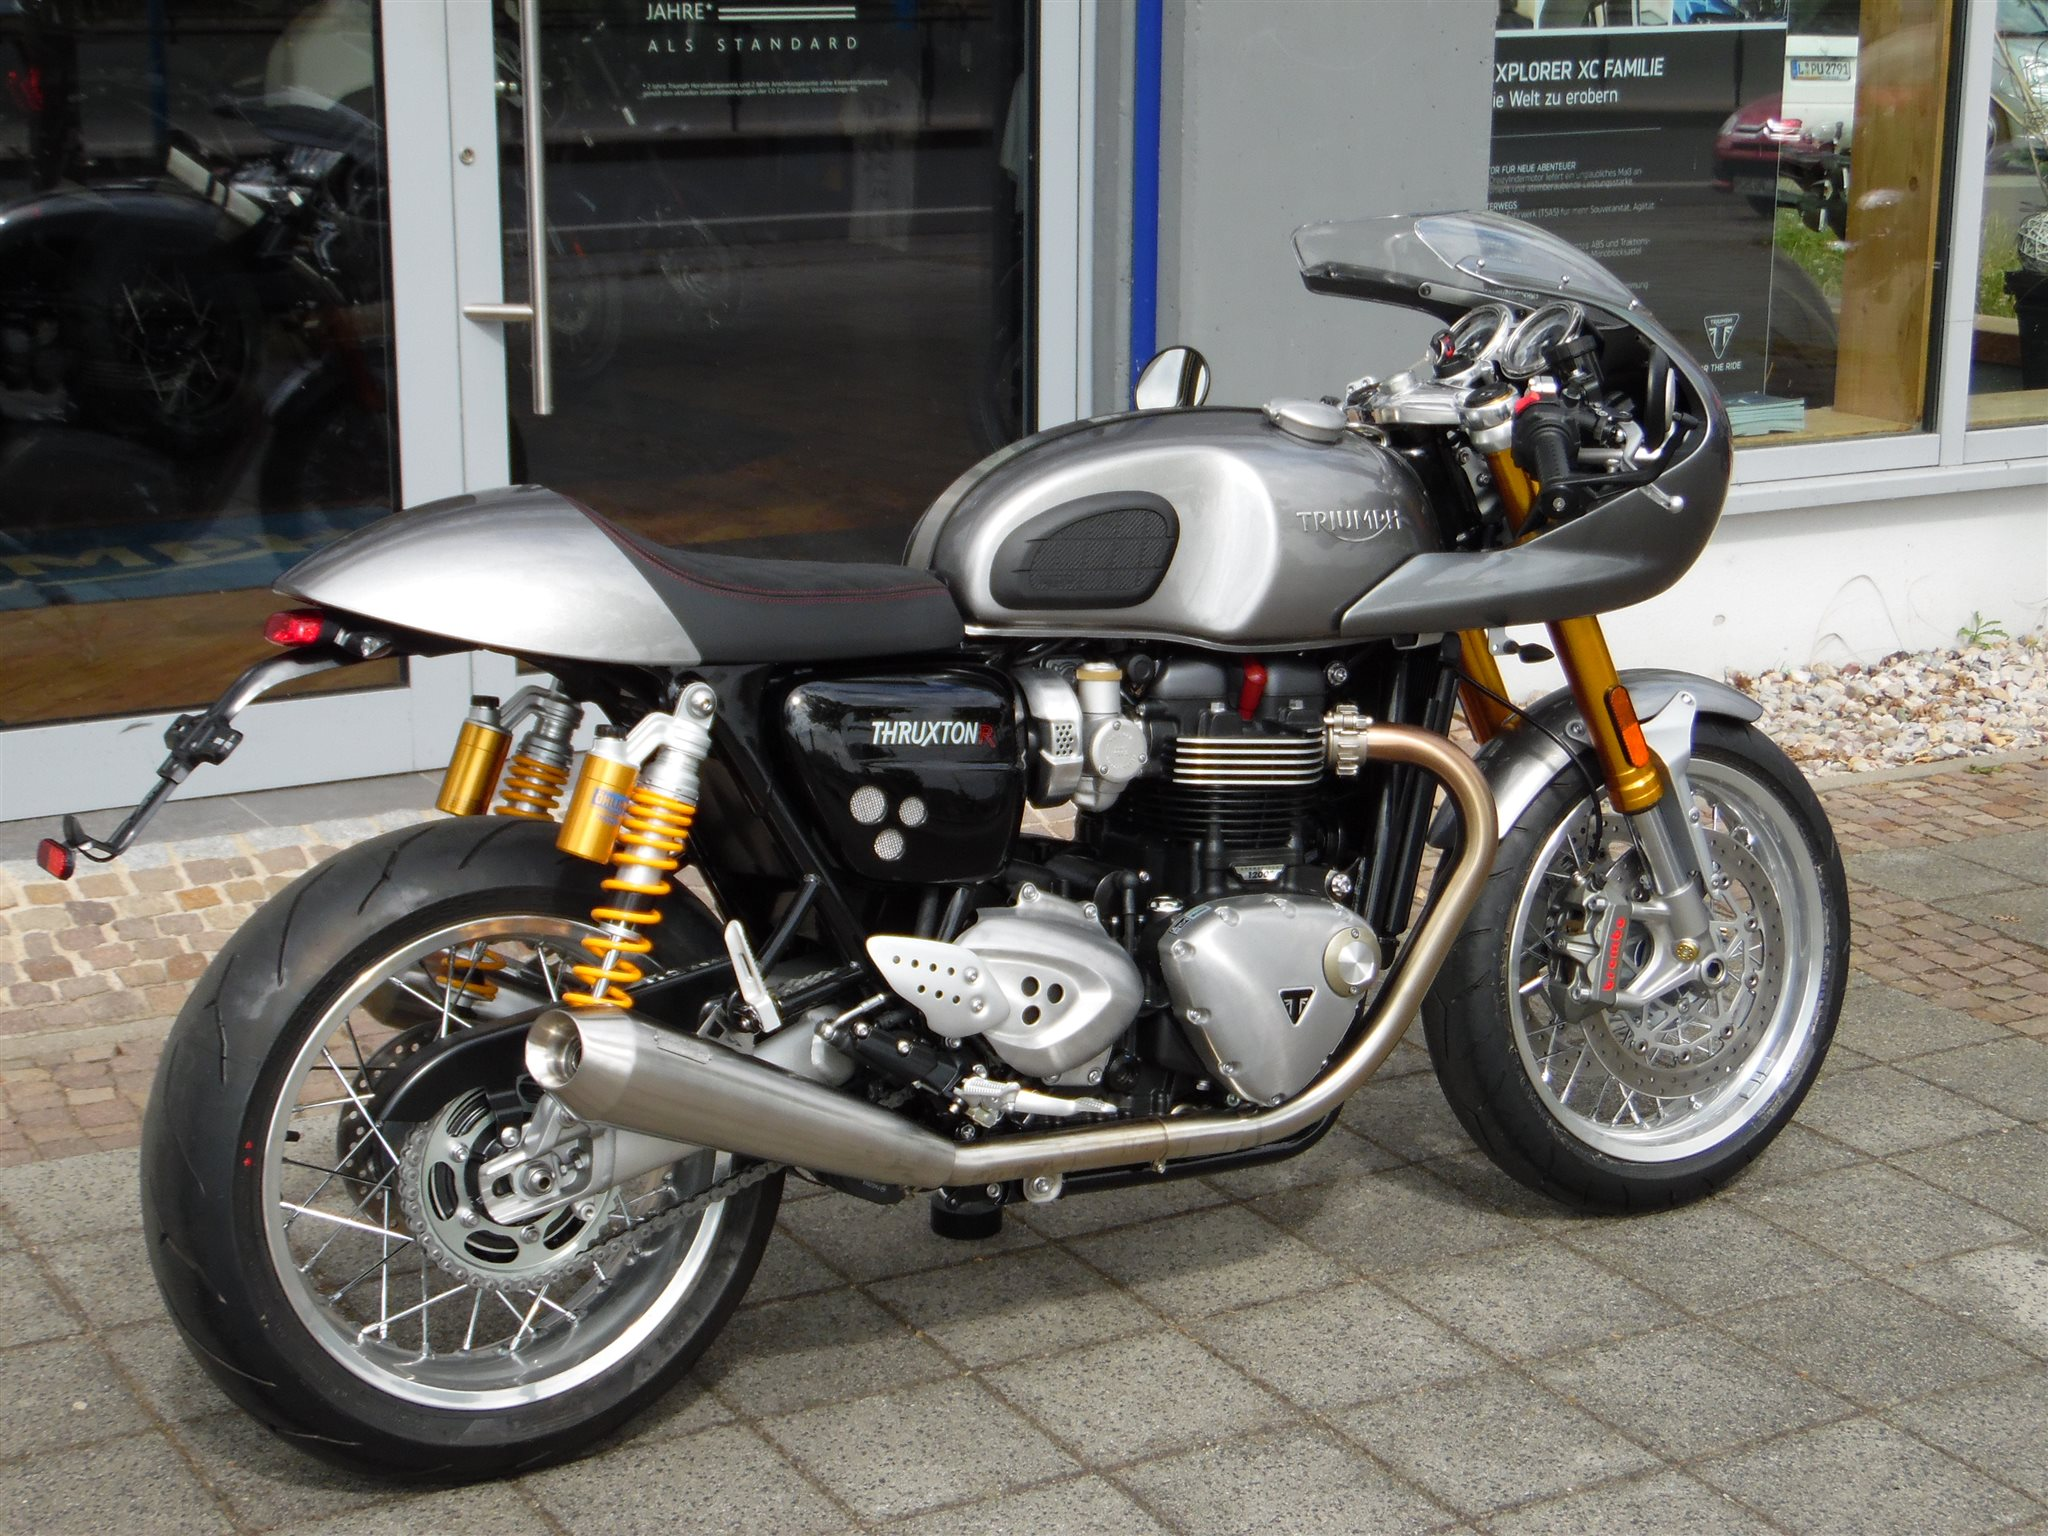 umgebautes motorrad triumph thruxton 1200r von kehl klingenberger gbr. Black Bedroom Furniture Sets. Home Design Ideas